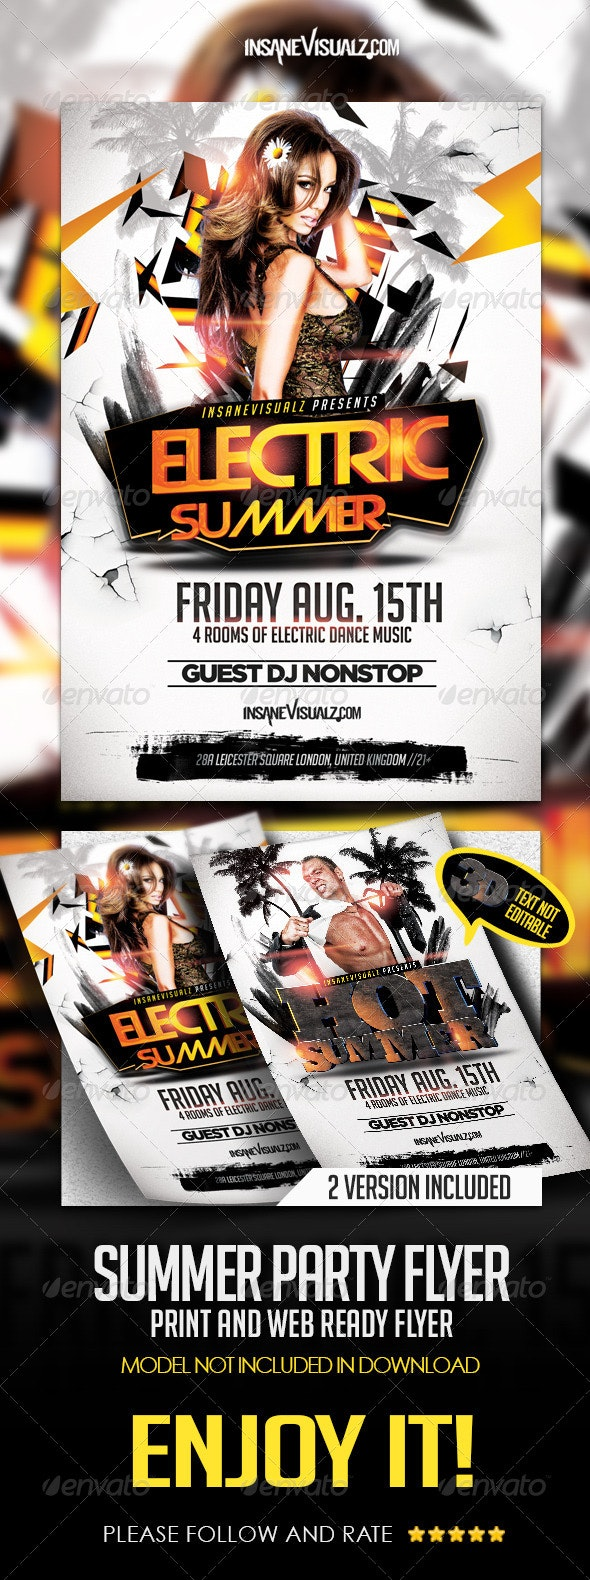 Electric Summer Flyer - Clubs & Parties Events